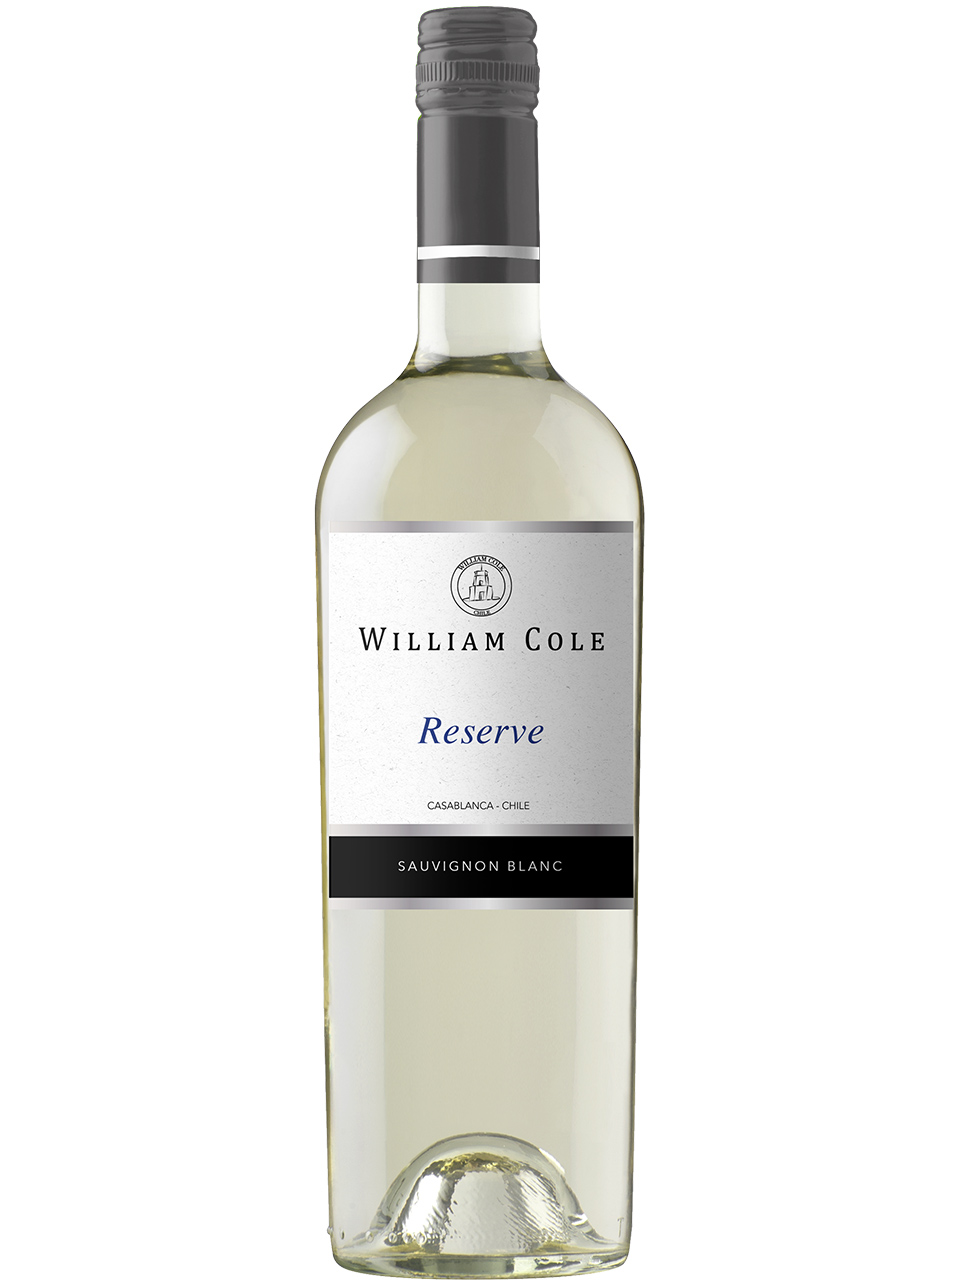 William Cole Reserve Sauvignon Blanc